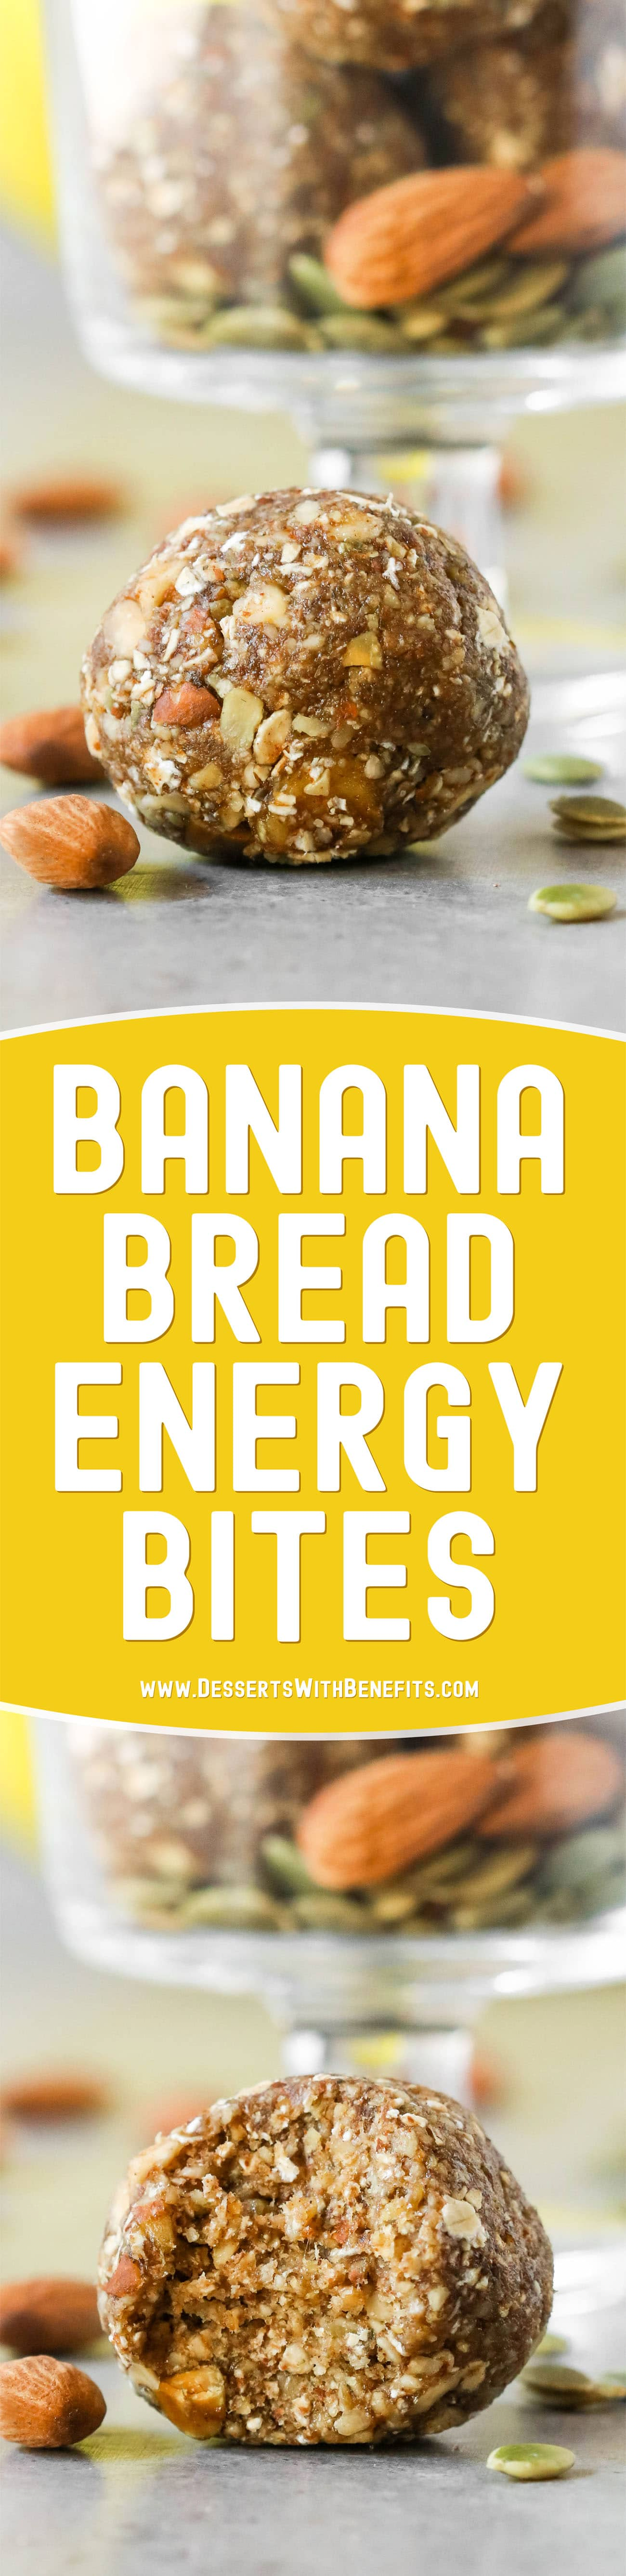 These Banana Bread No Bake Energy Bites are soft, fudgy, sweet, and delicious, it's hard to believe they're raw, vegan, and gluten free, with no added sugar! They're fast and easy to make with only seven ingredients required. Satisfy your banana bread cravings the healthy way with this energy bites recipe!